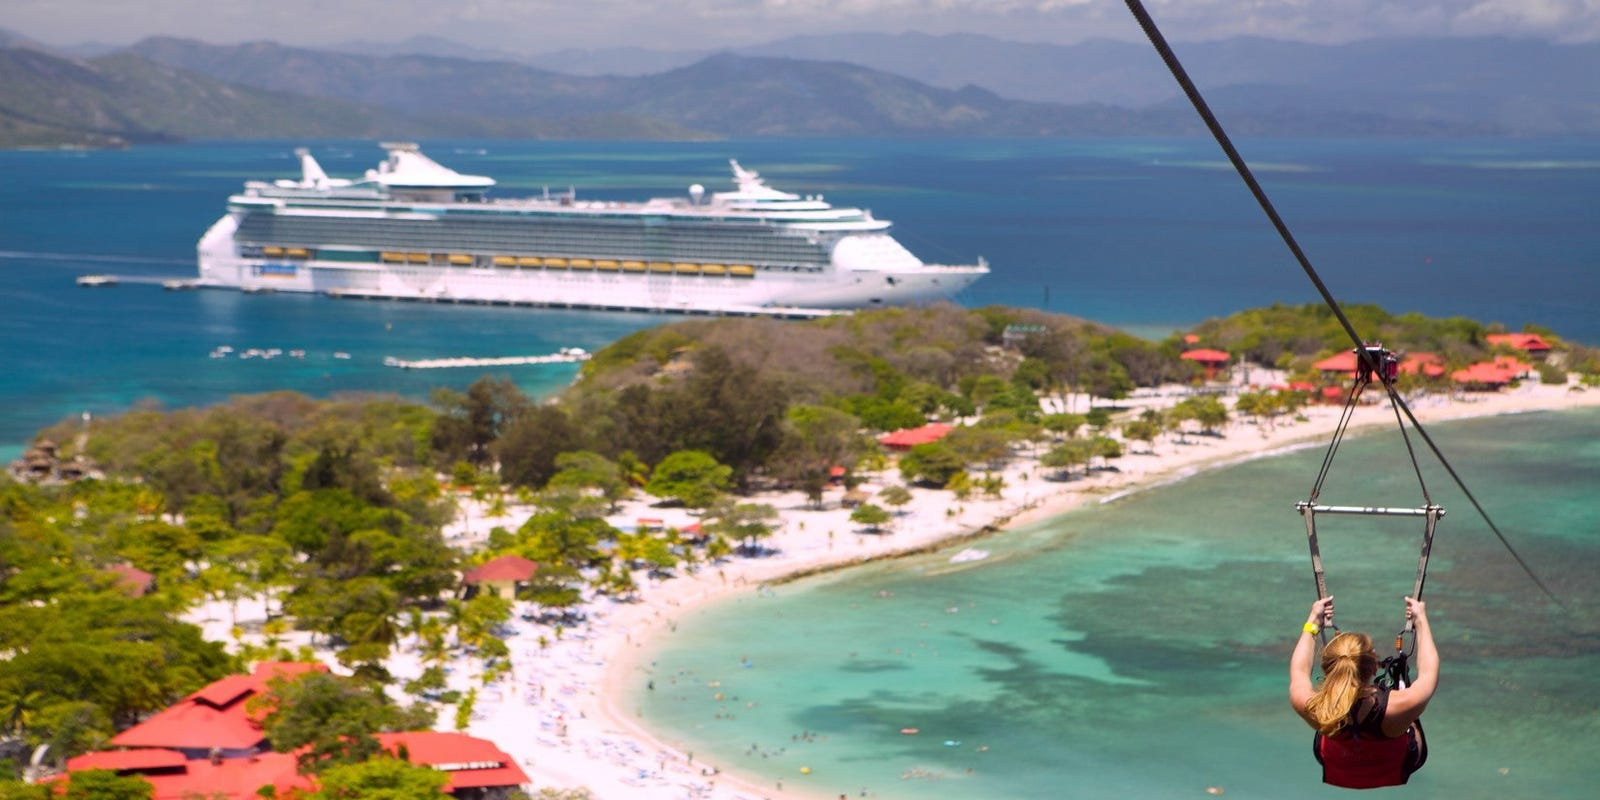 'Feels very unfair': Families say cruise lines are using a 'technicality' to refuse refunds